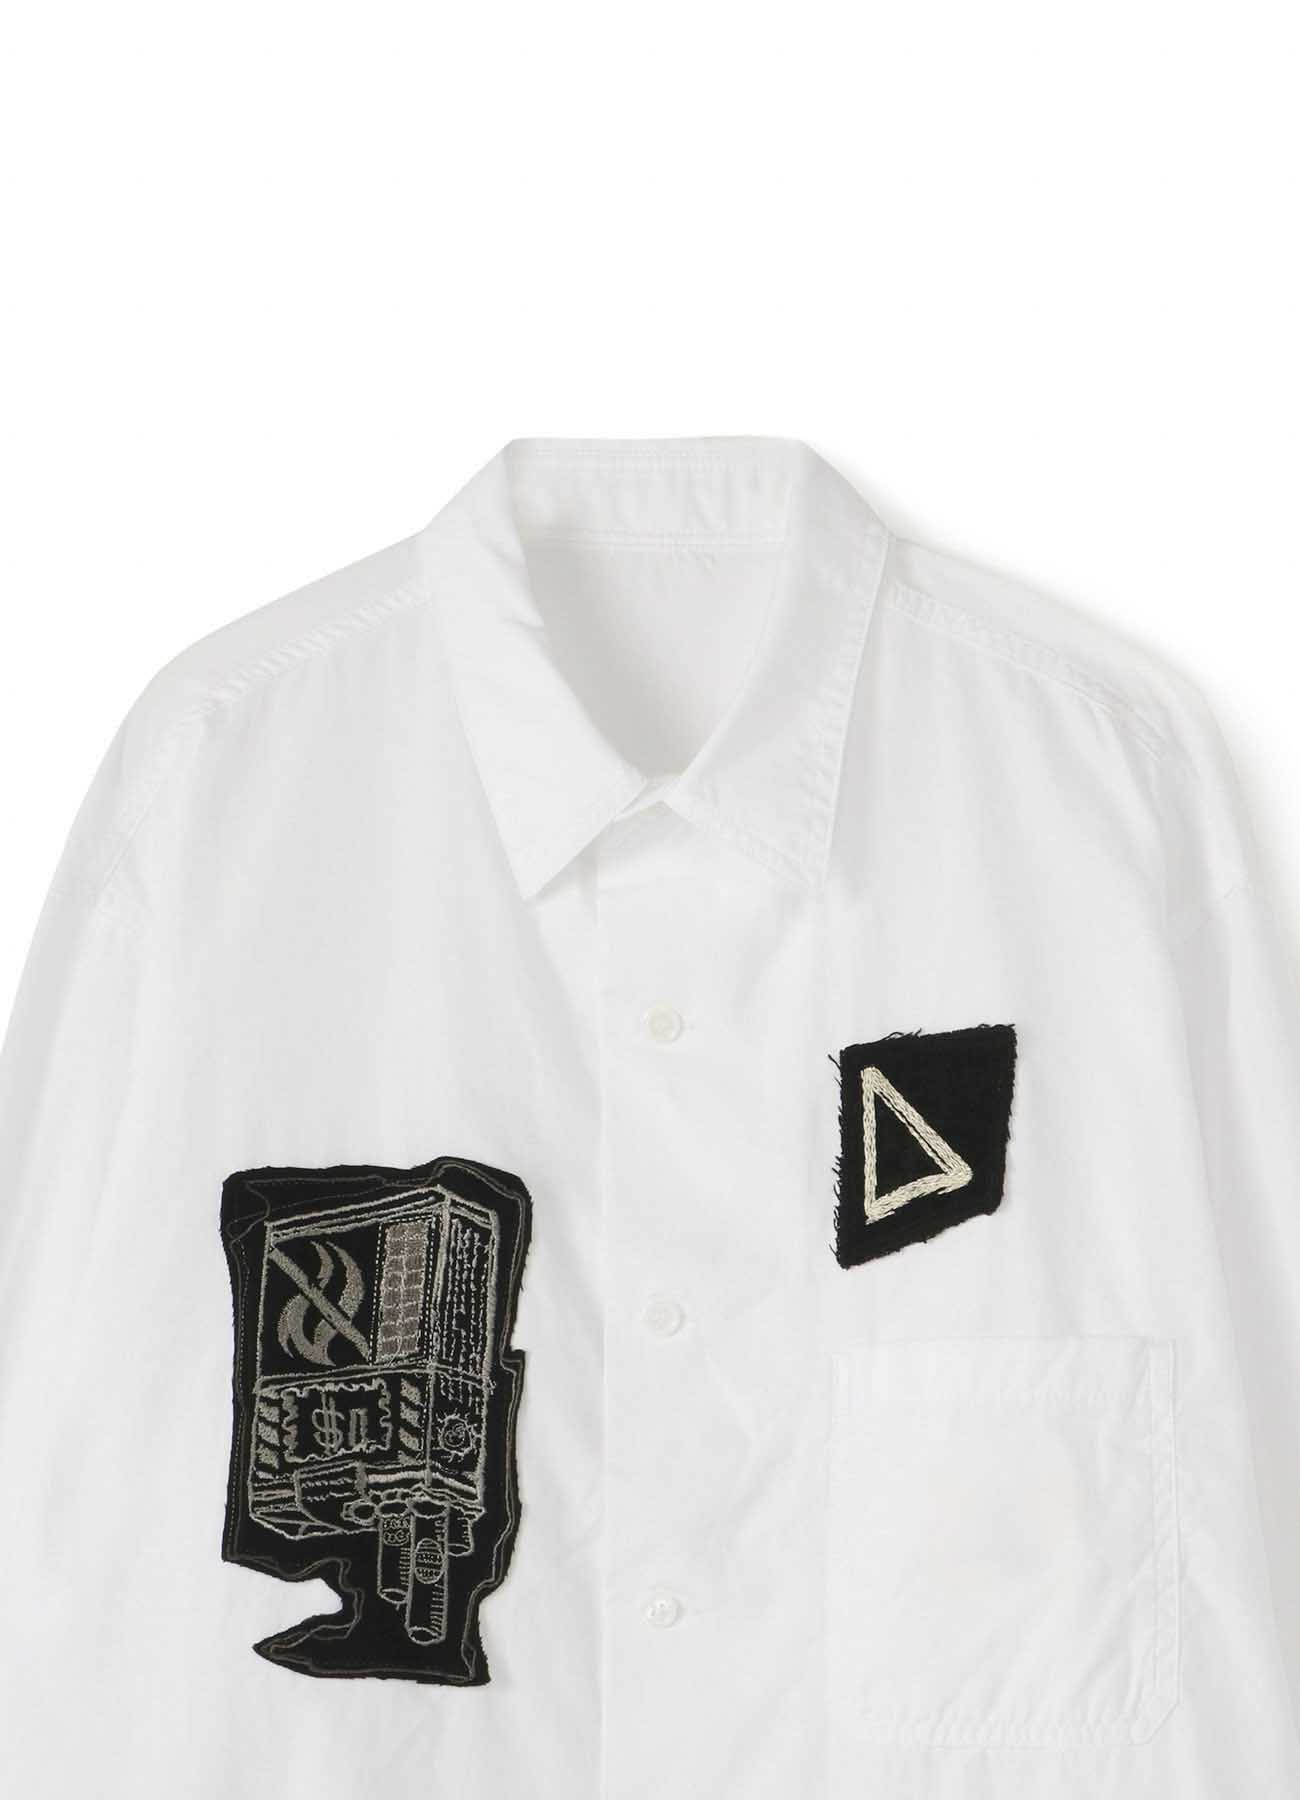 B Yohji Yamamoto One-of-a-kind Patch Shirt